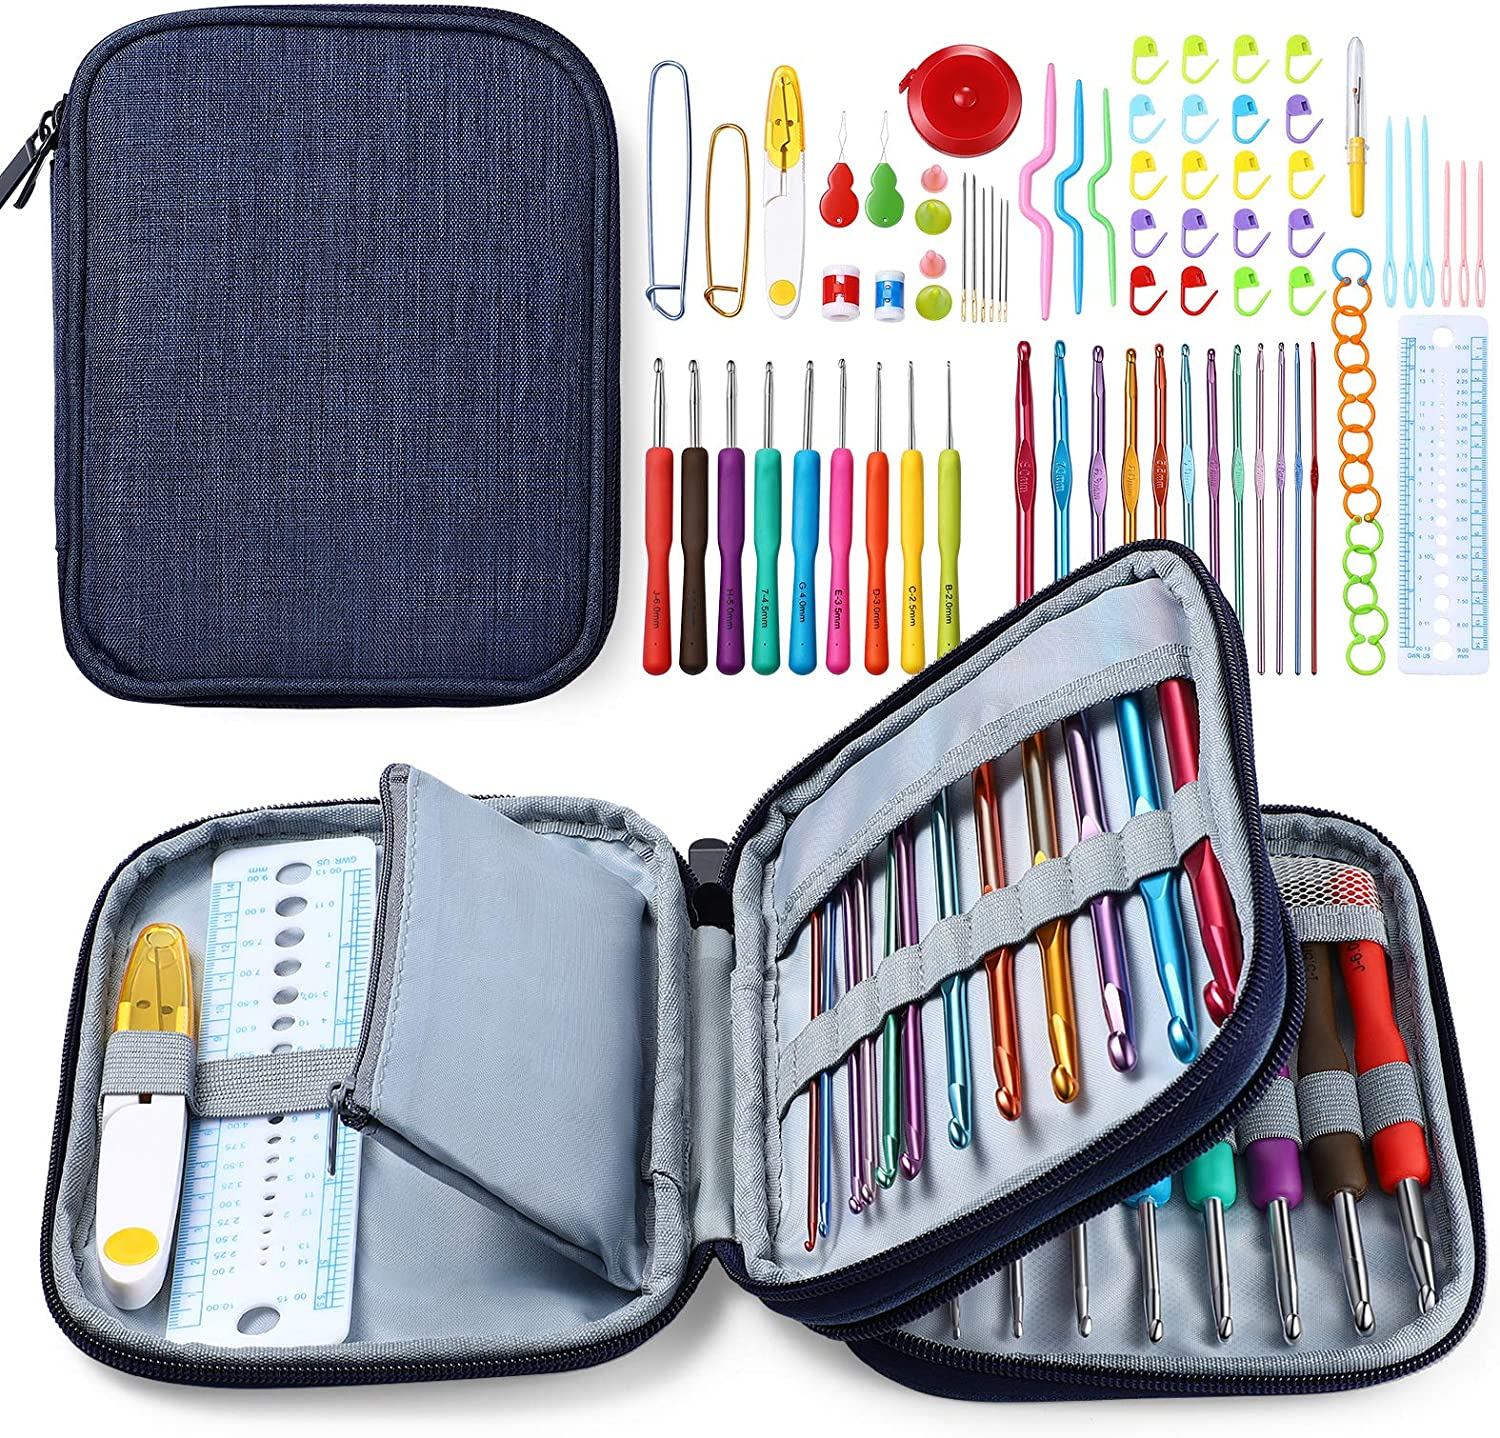 ISSEVE latest 85Pcs Crochet Quantity limited Hook Set with Accessories Ergo Storage Bag